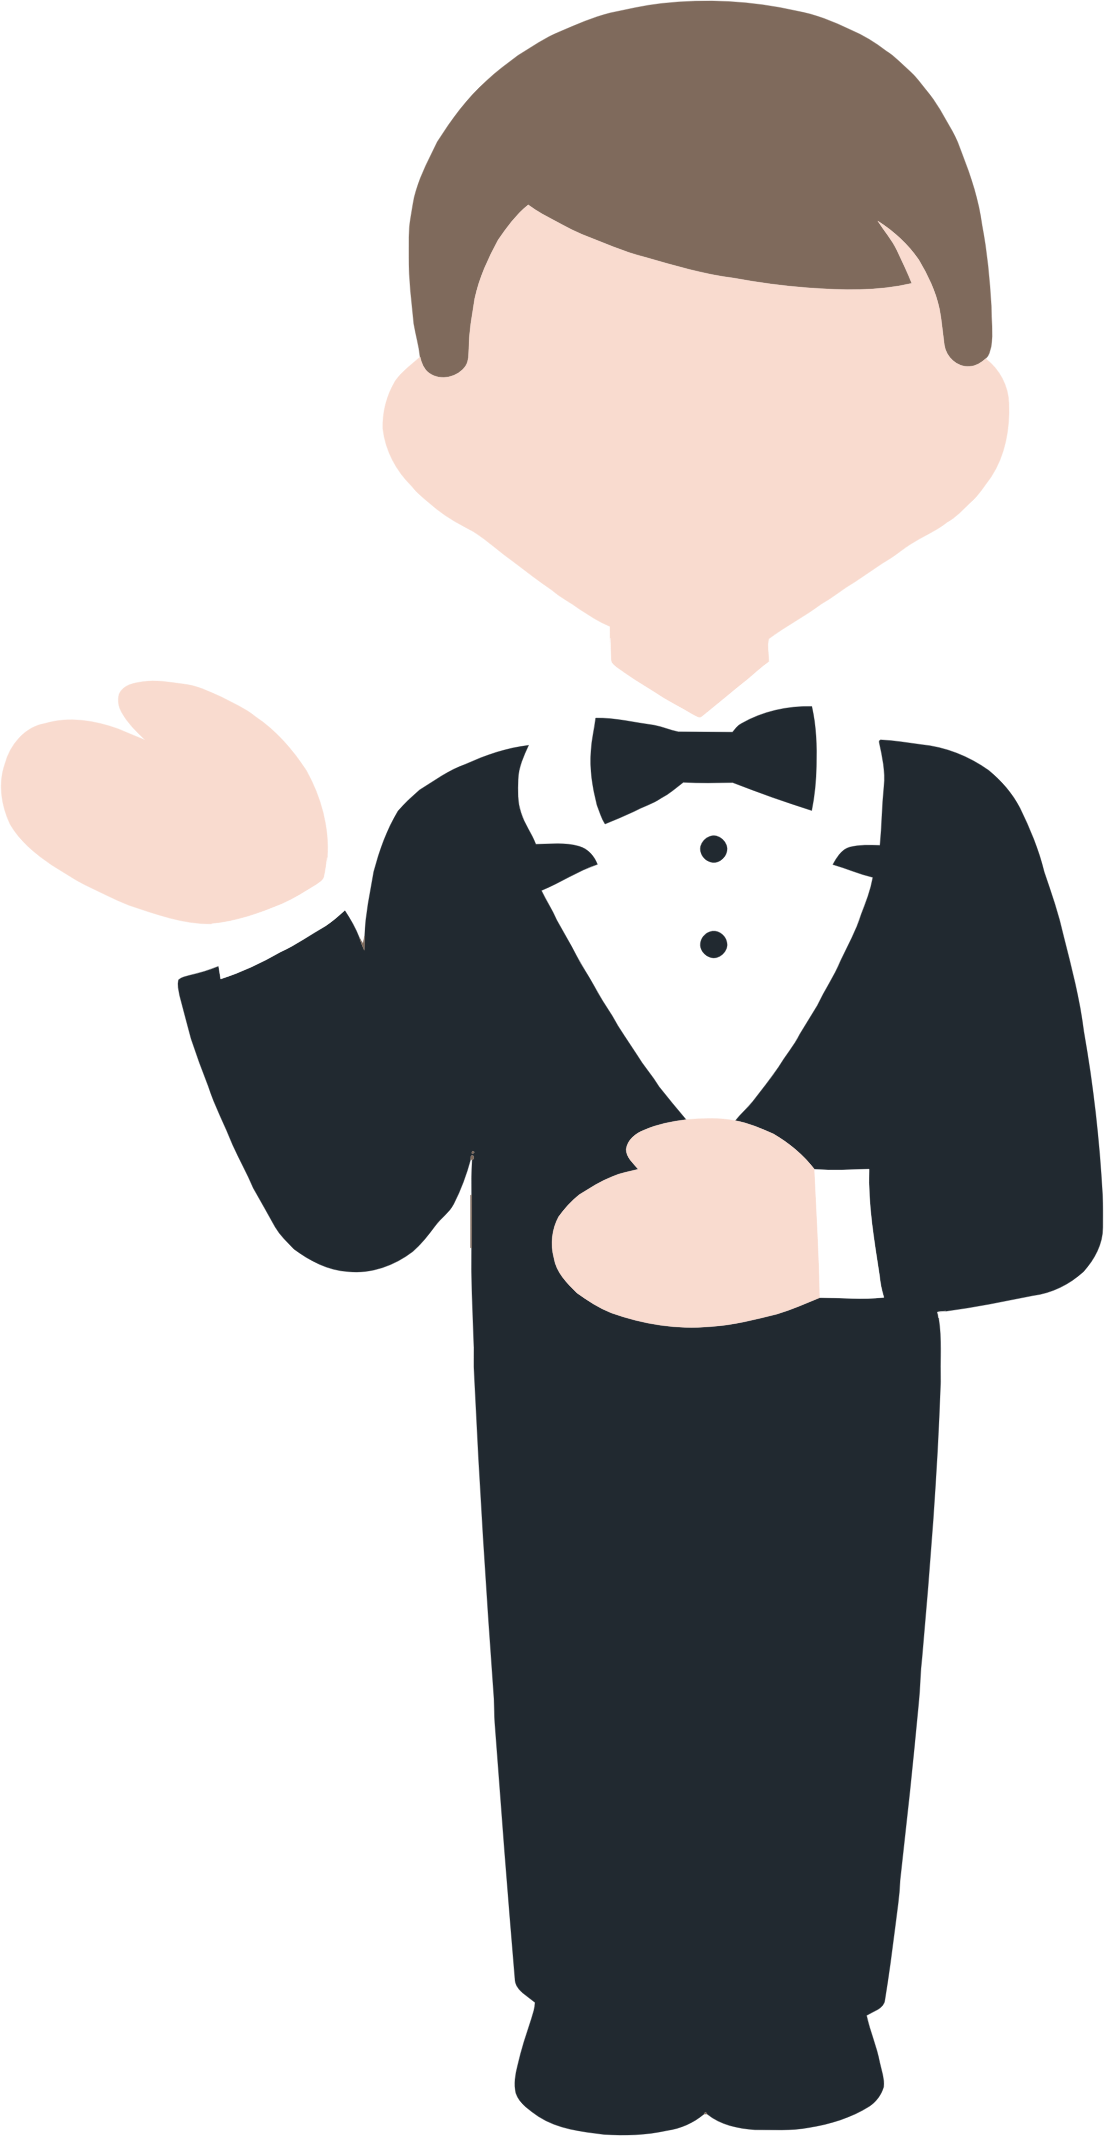 Restaurants clipart animated. Cartoon concierge big image